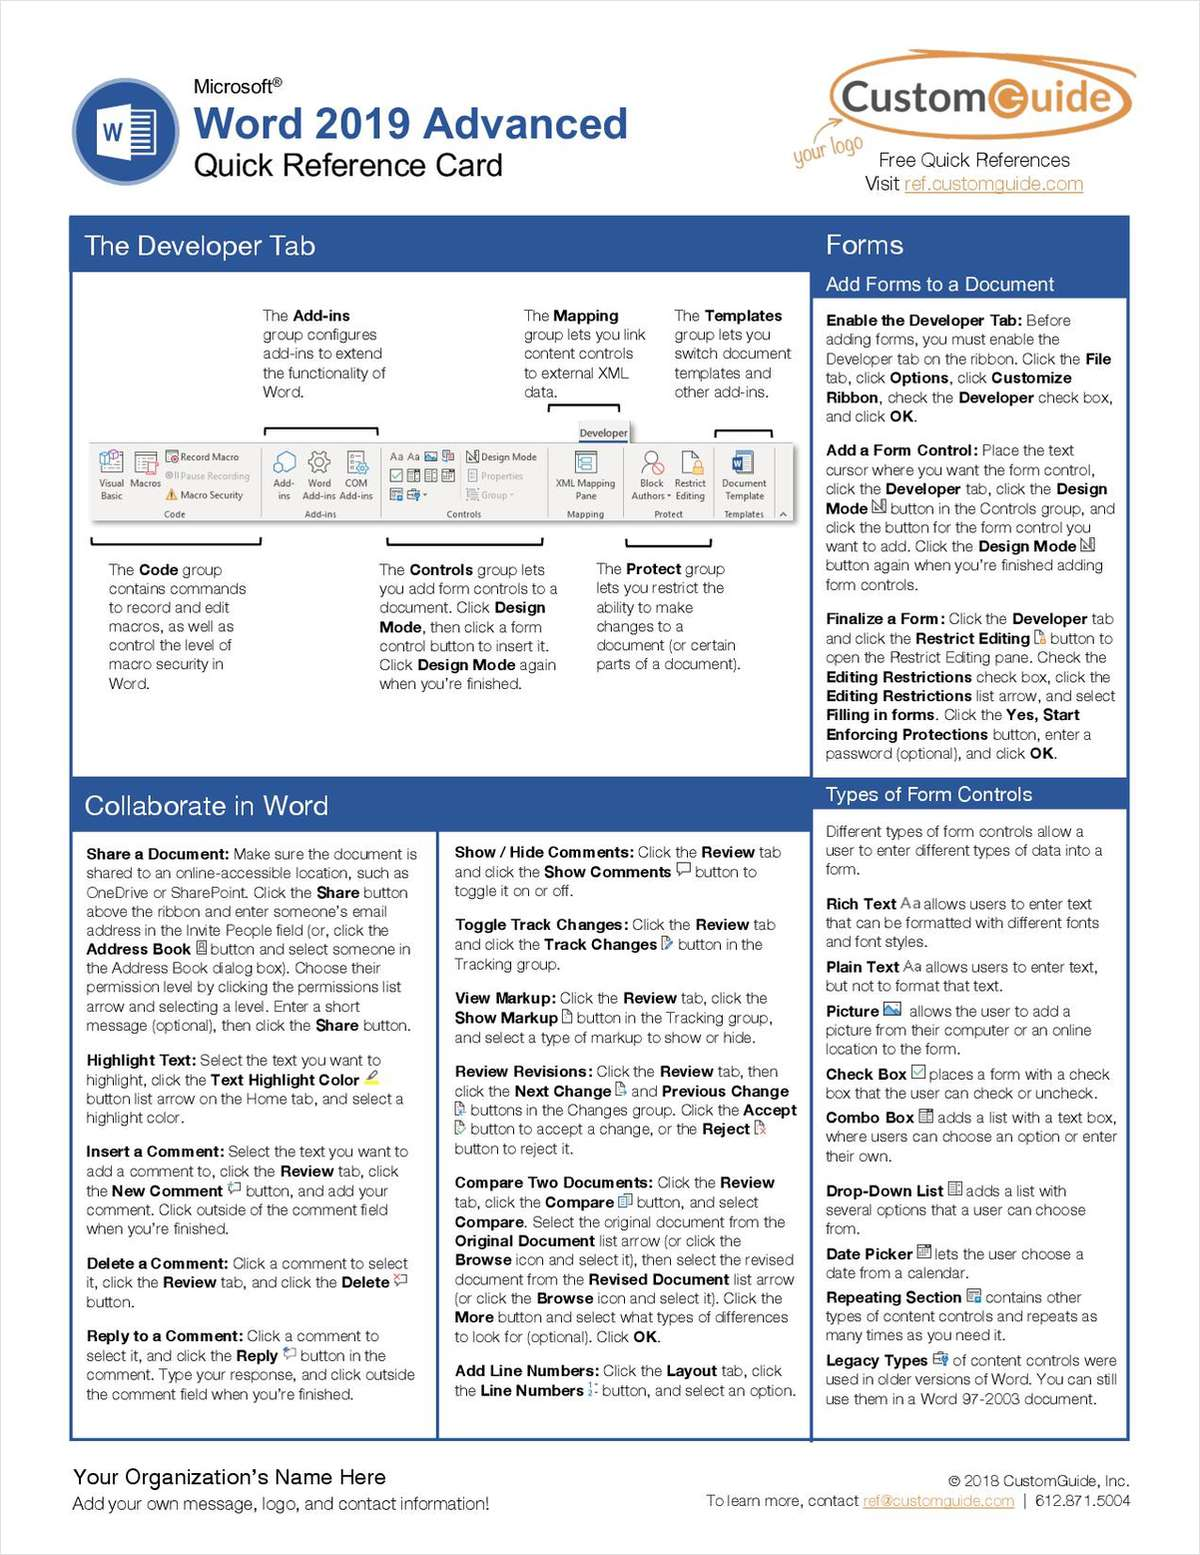 Microsoft Word 2019 Advanced -- Free Reference Card